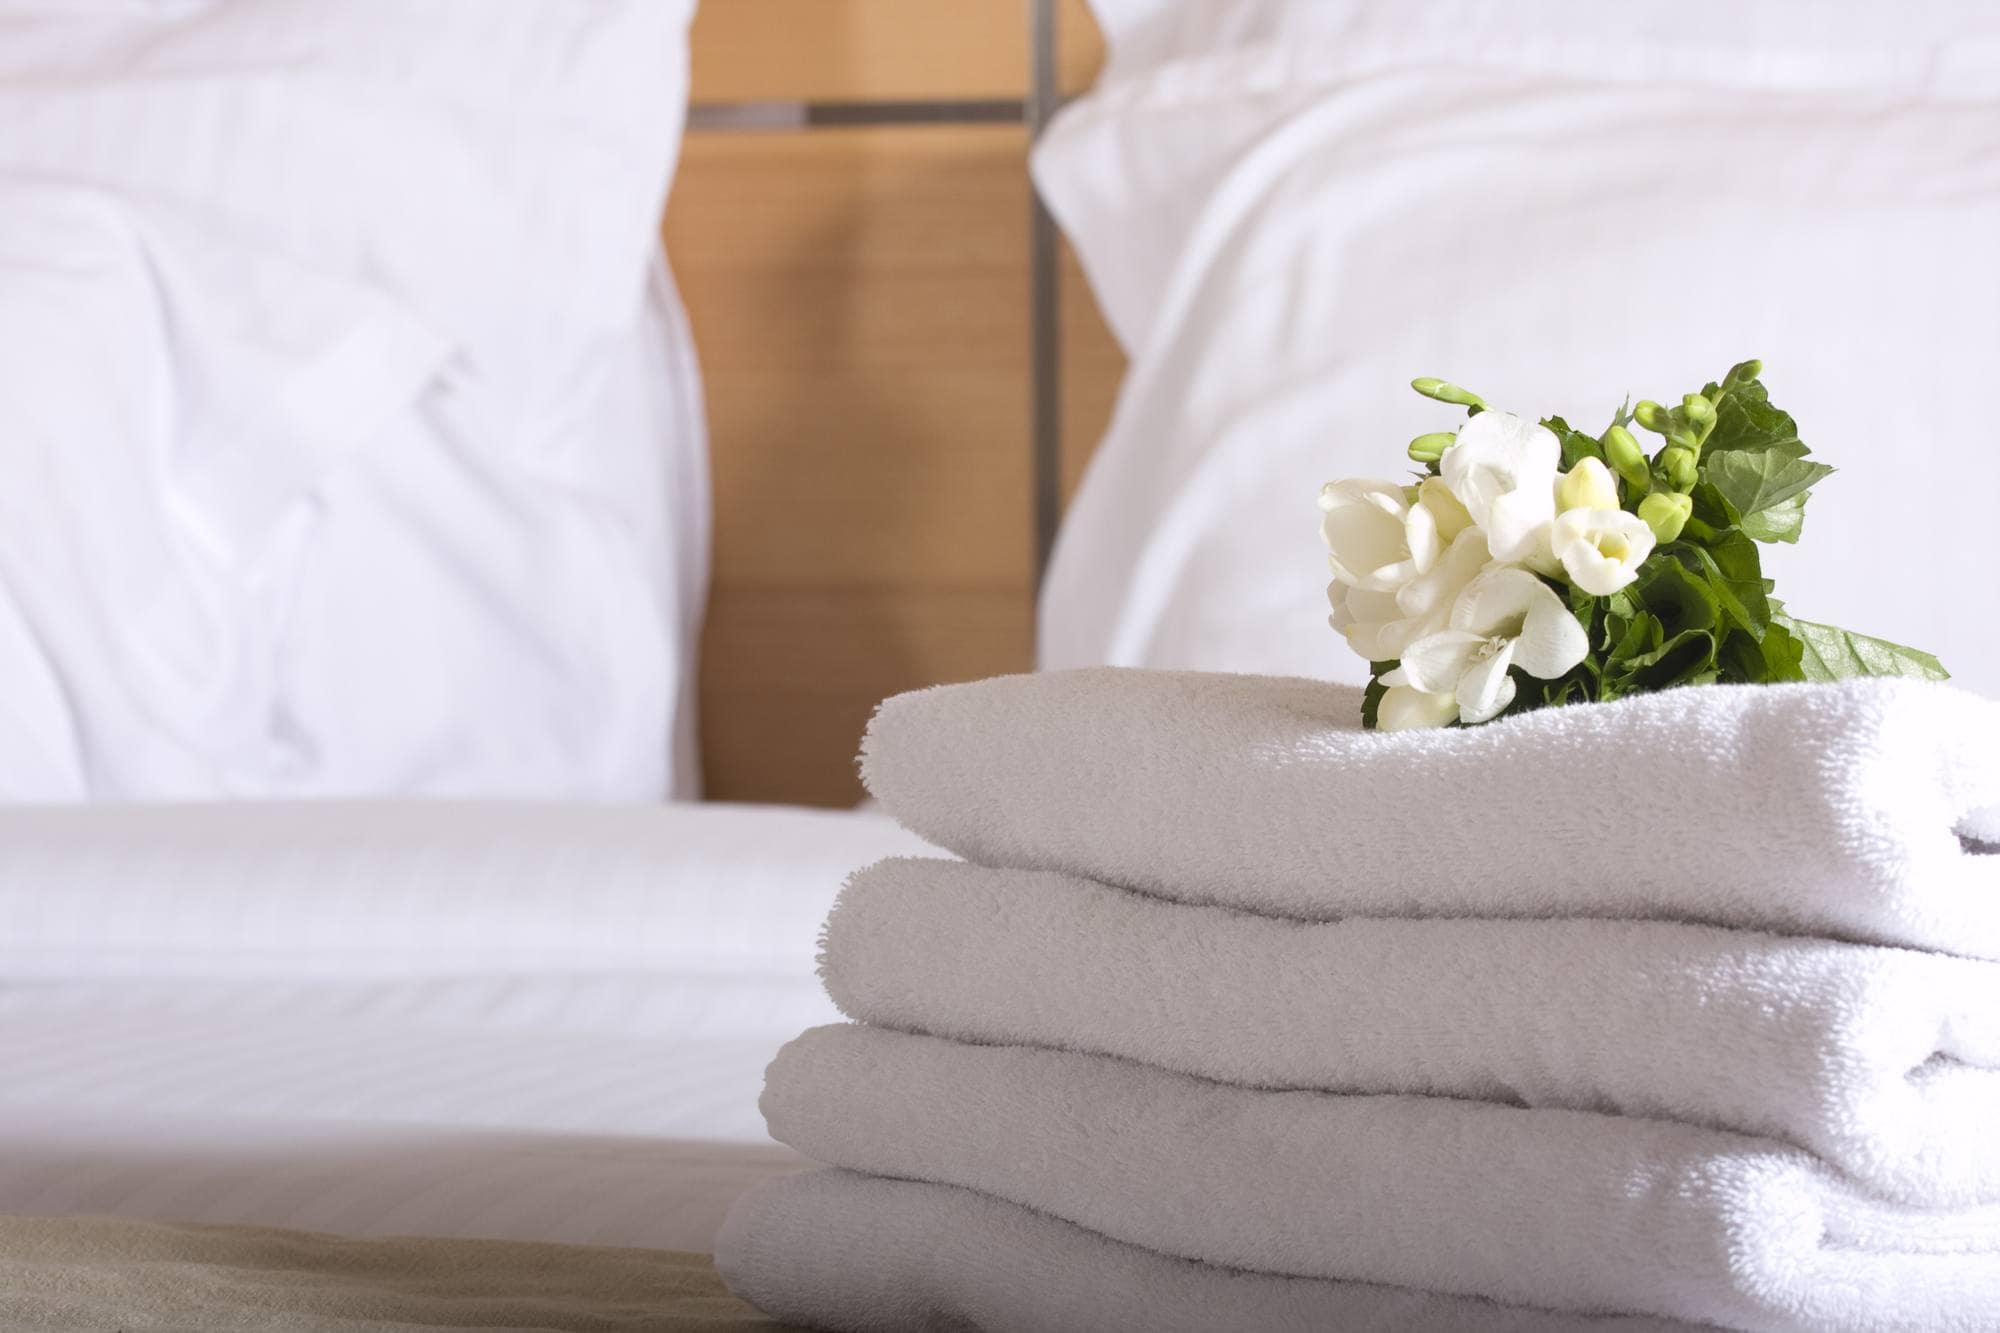 Sleep soundly during your hotel stay knowing your booking is secure